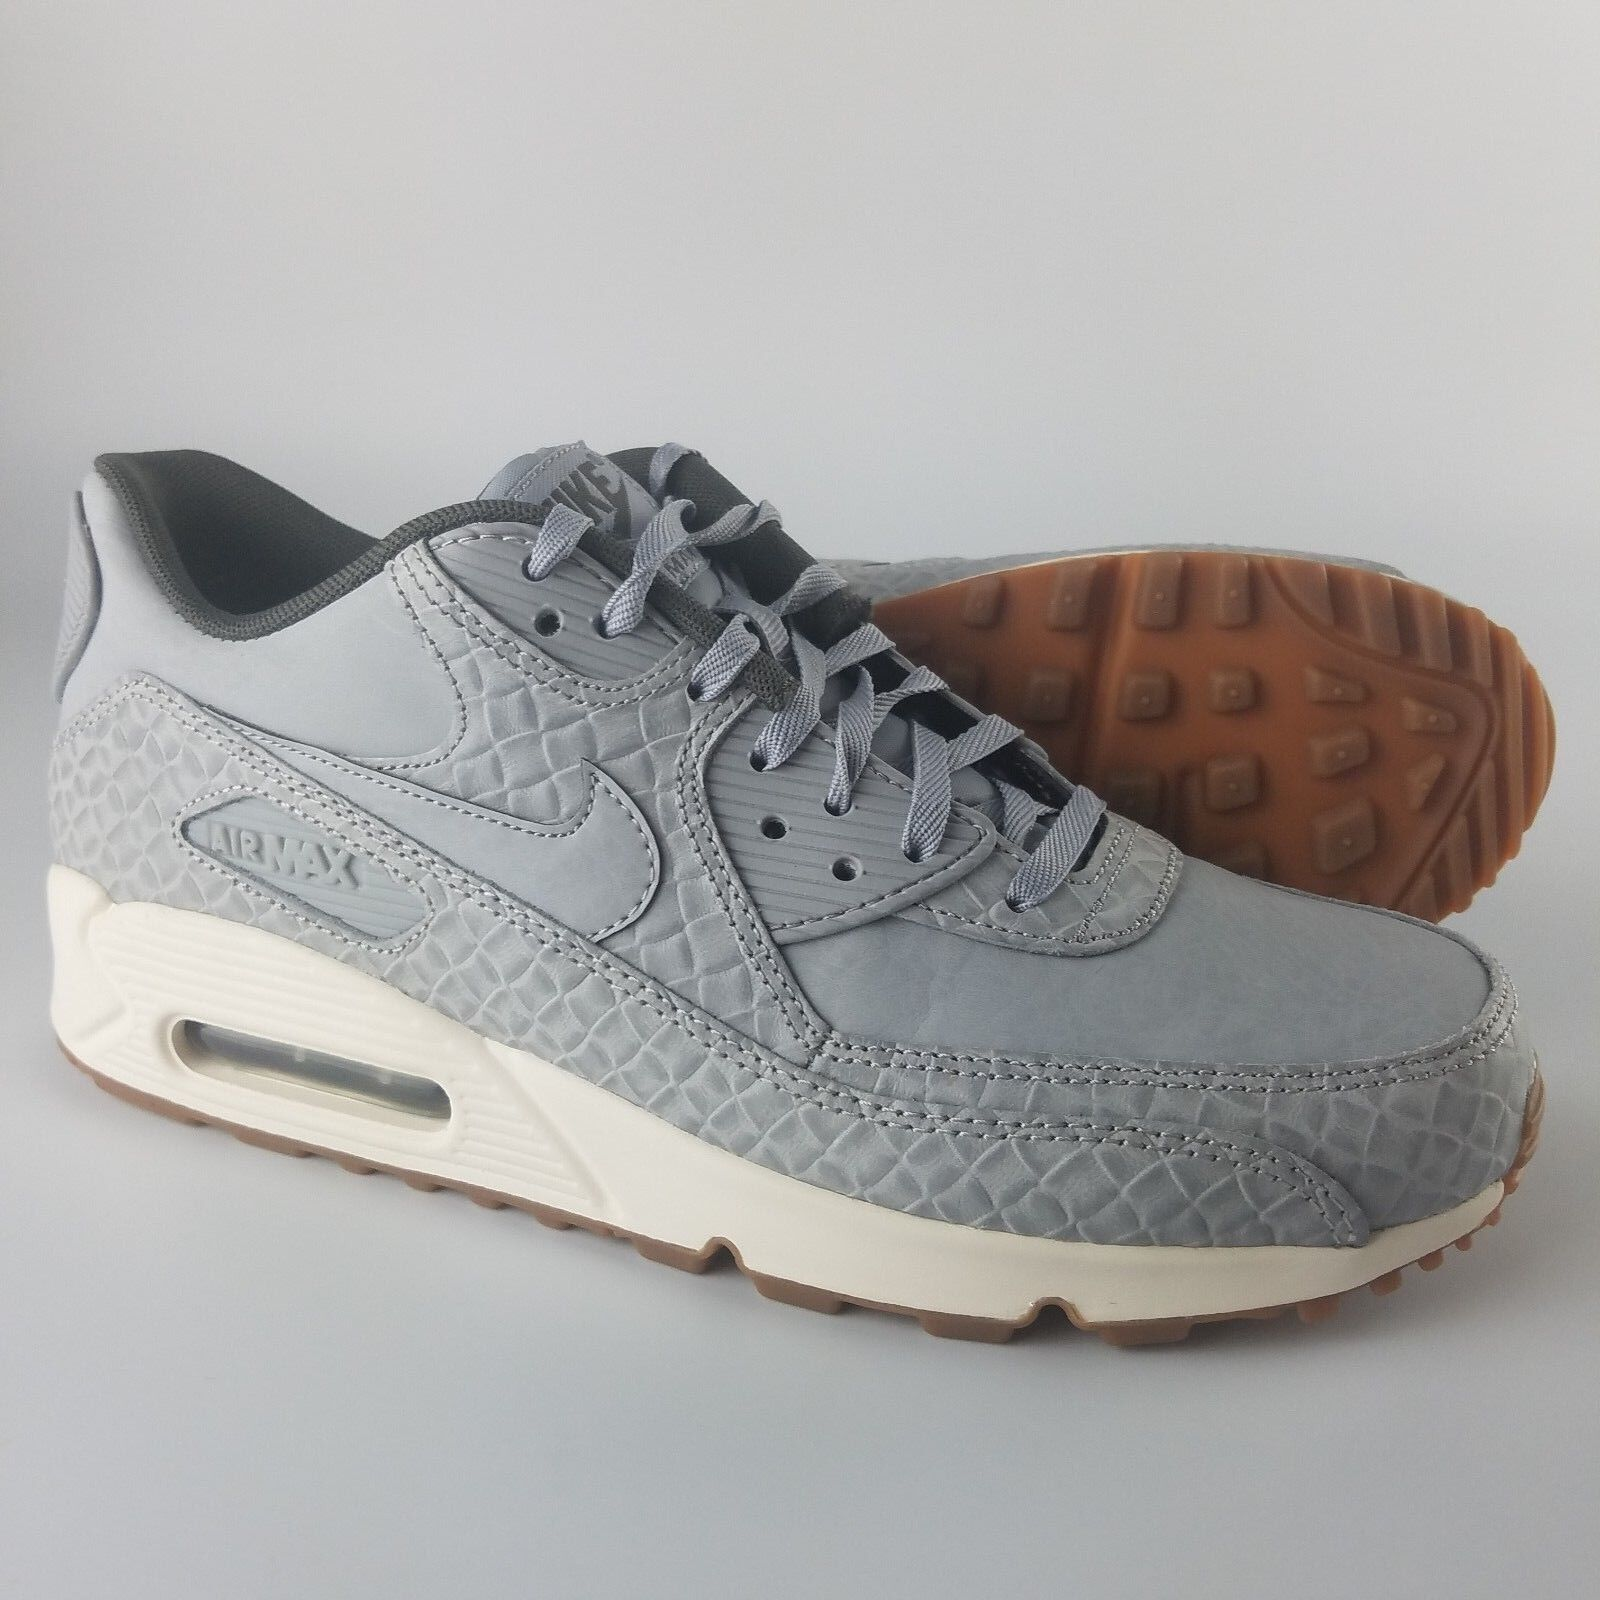 Women's Nike Air Max 90 Premium Shoes SNEAKERS Size 7 Color Wolf Grey